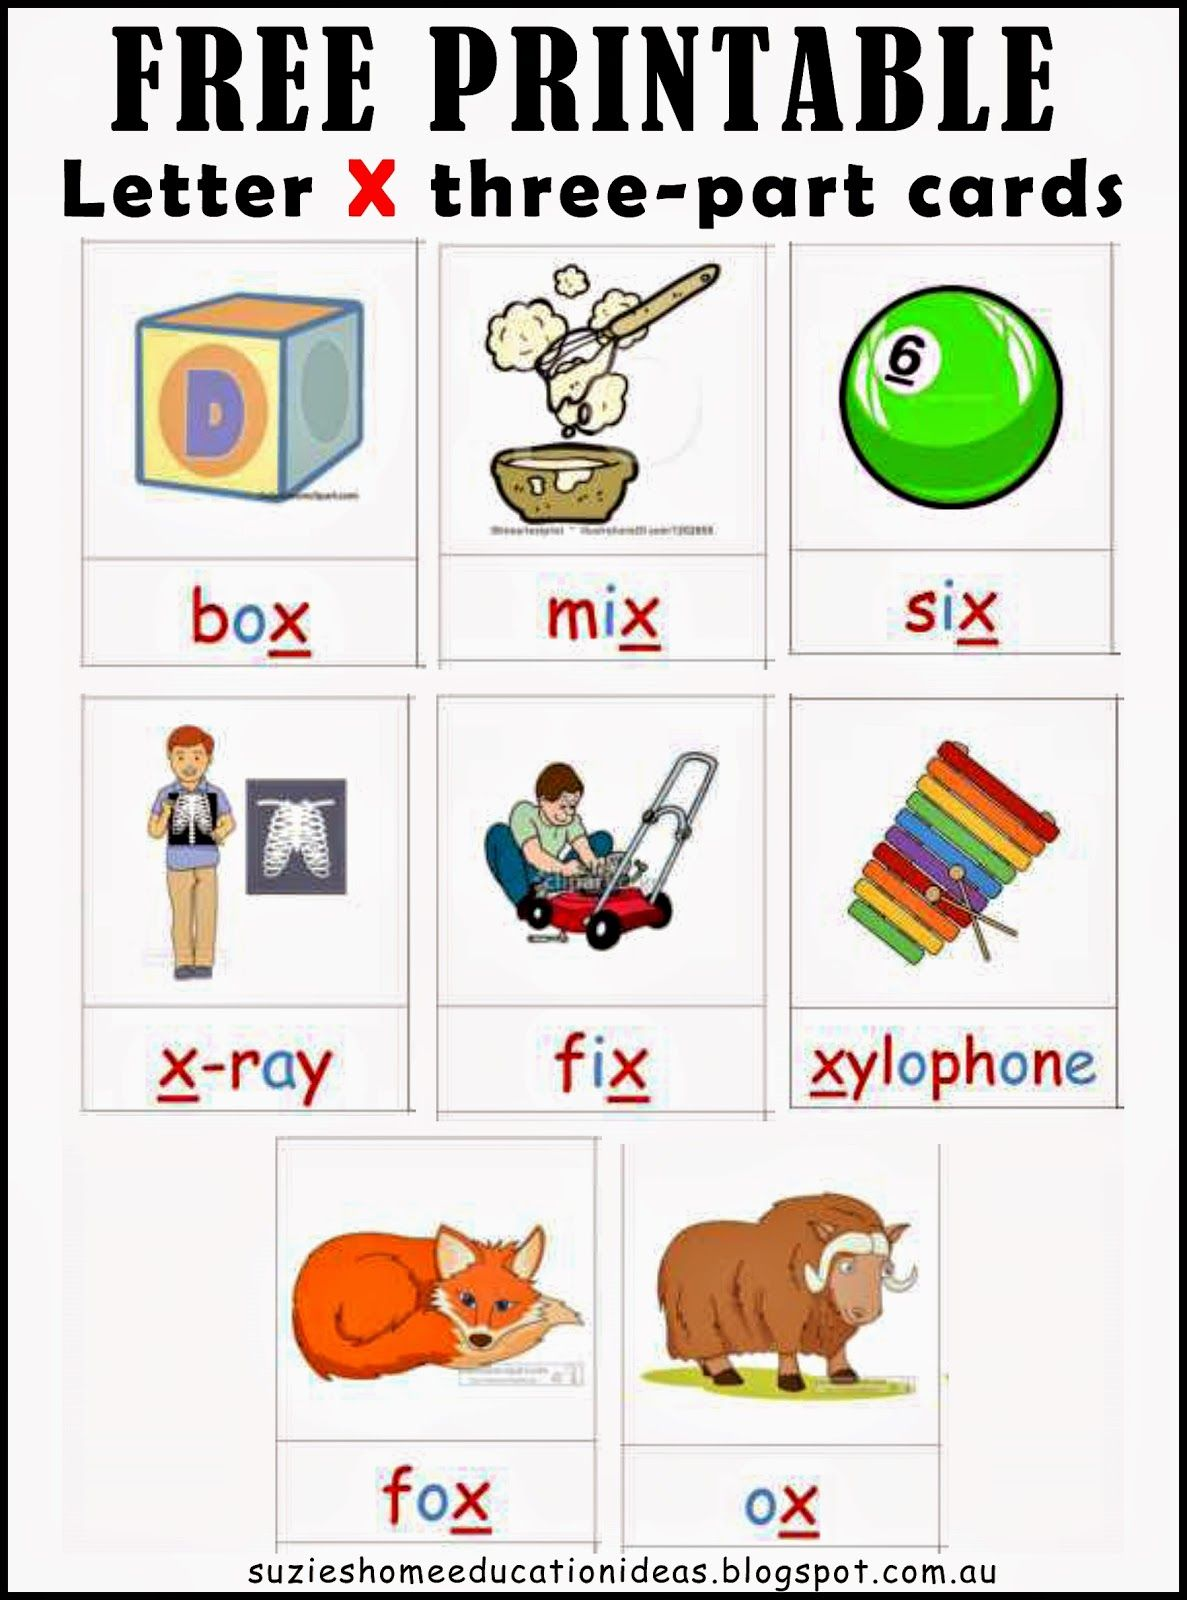 8 letter words starting with y letter x printable cards and activity ideas classroom 16962